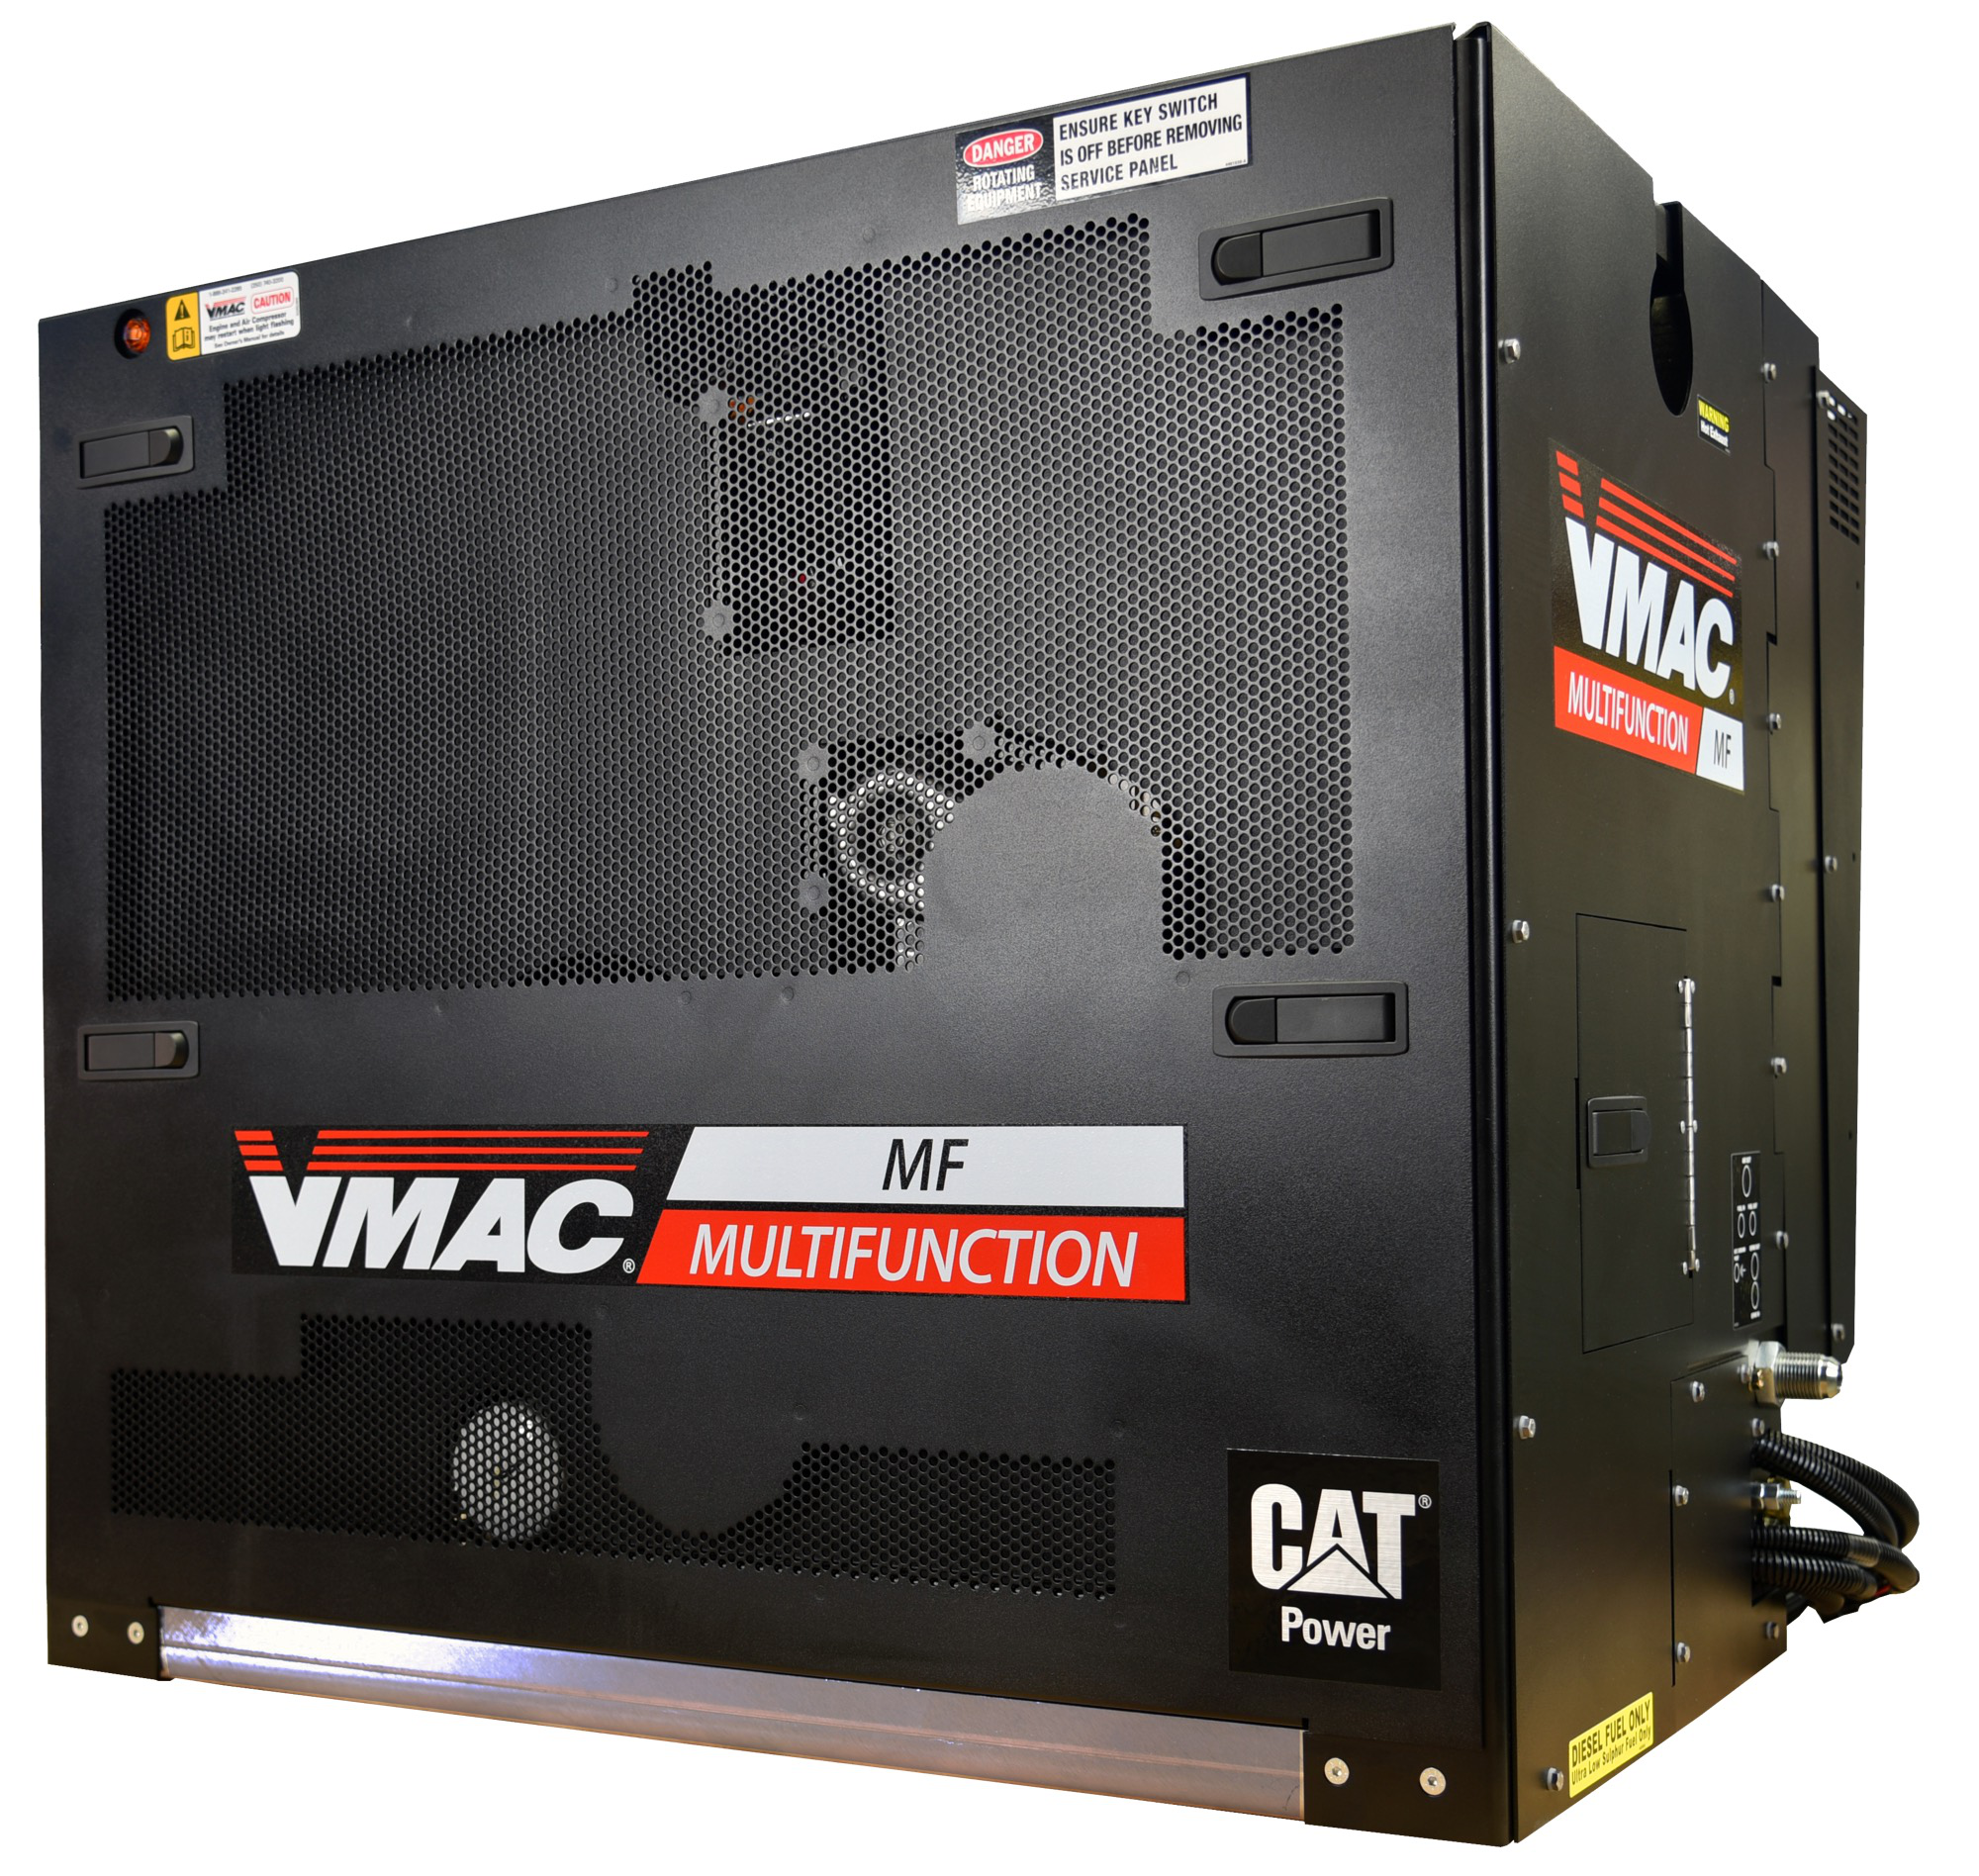 cat vmac multifuction power system